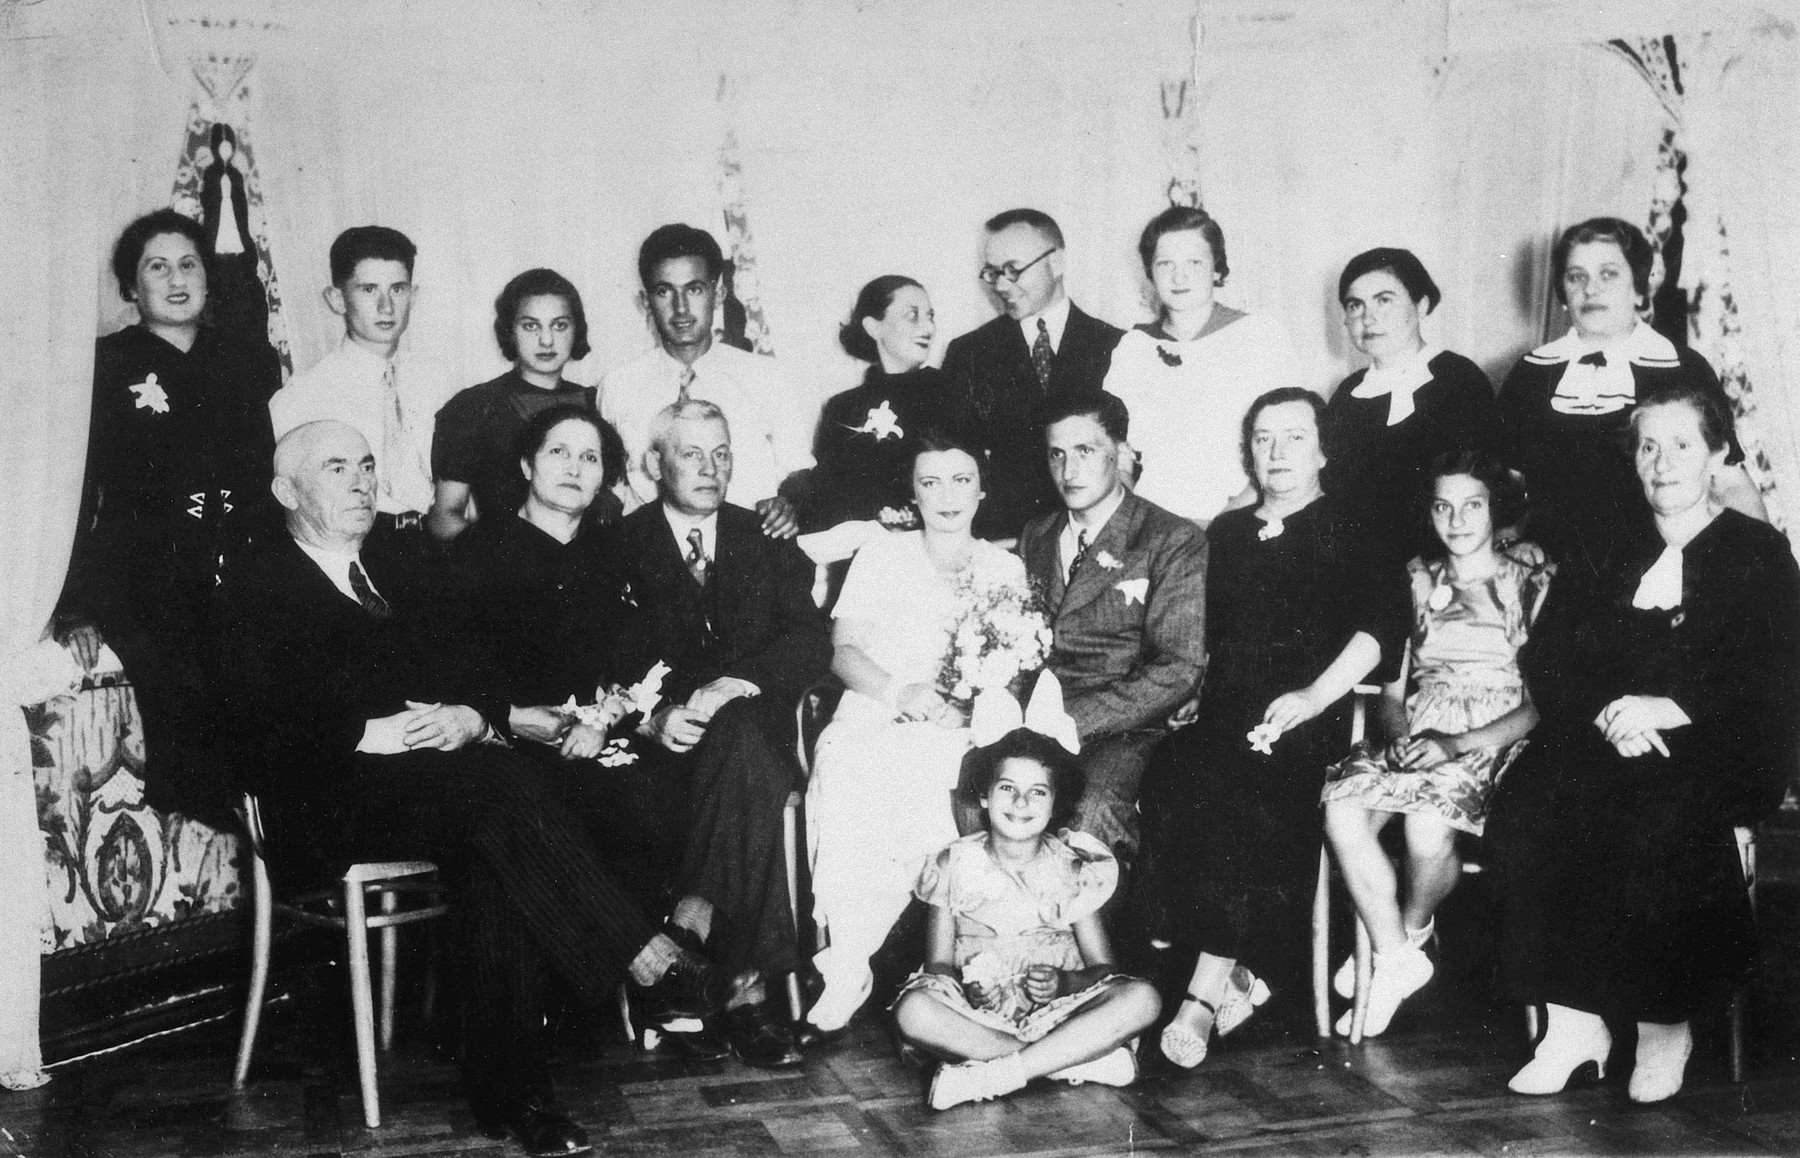 Portrait of a Polish Jewish family at a wedding.  Pictured are Hanka Wajcblum (seated in front), Estusia Wajcblum (seated second from right), Rebeka (Jaglom) Wajcblum (back row, left), and Sabina Wacjblum (back row, third from left).